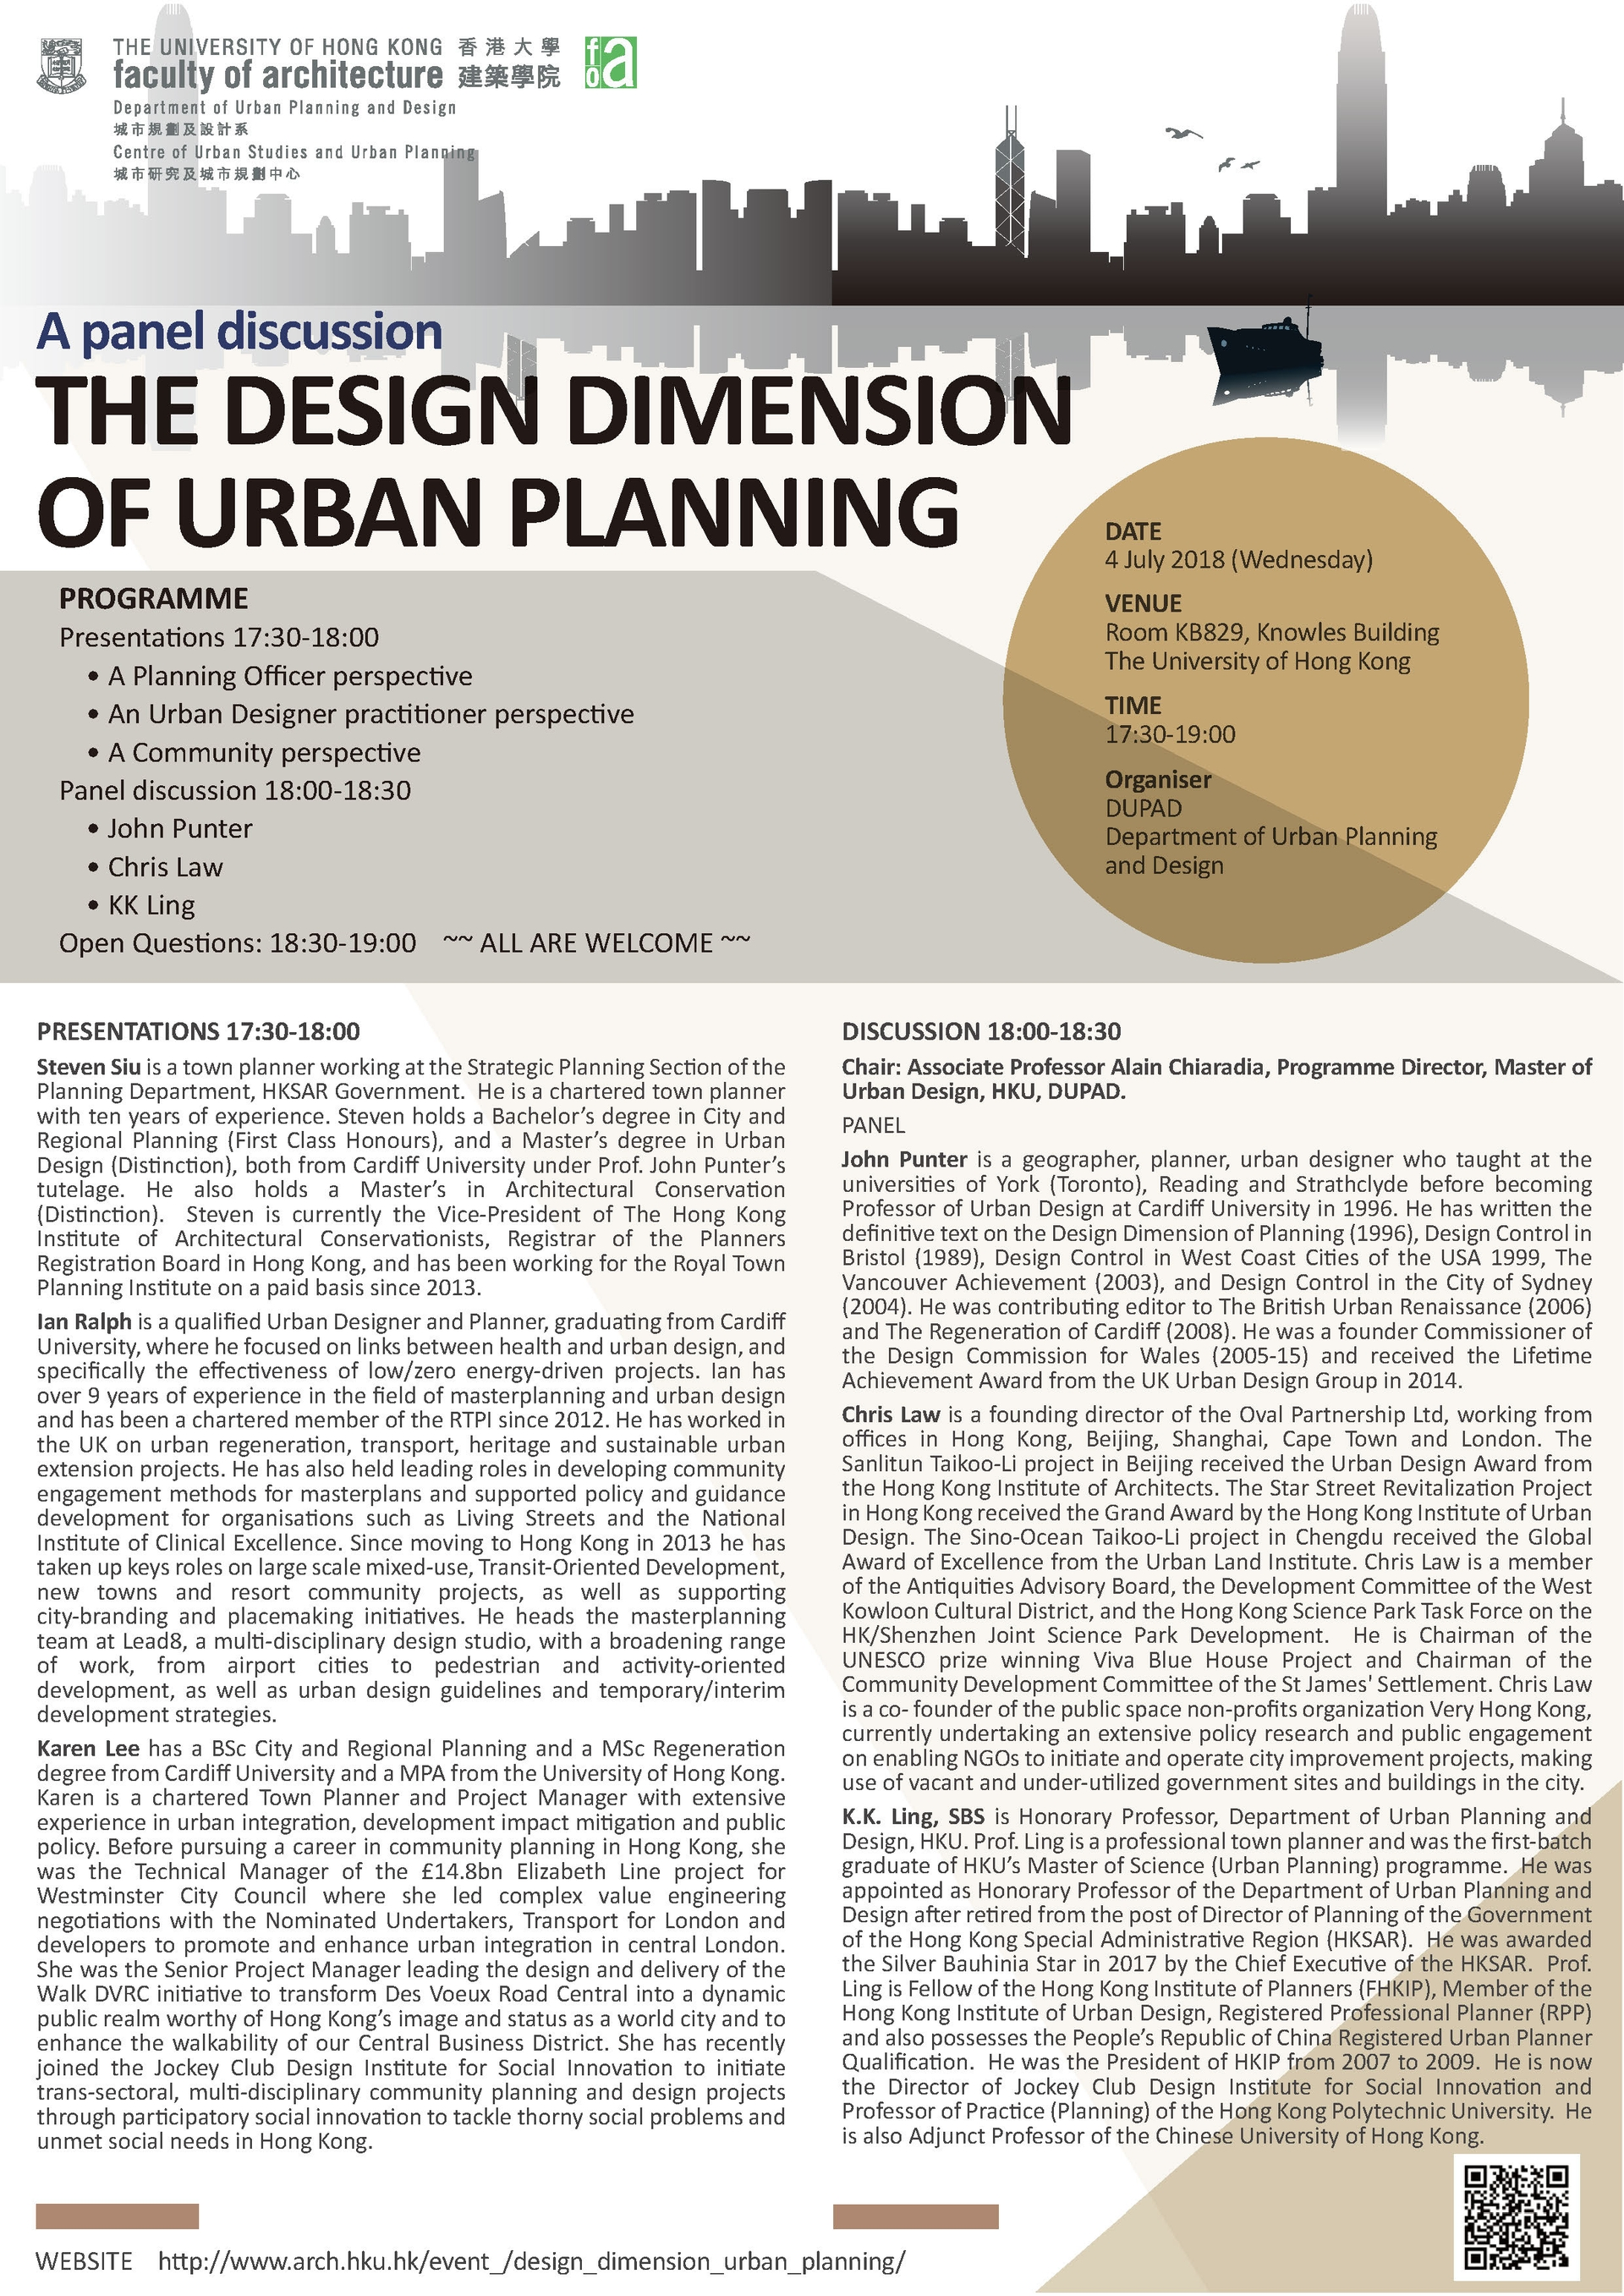 The Design Dimension of Urban Planning